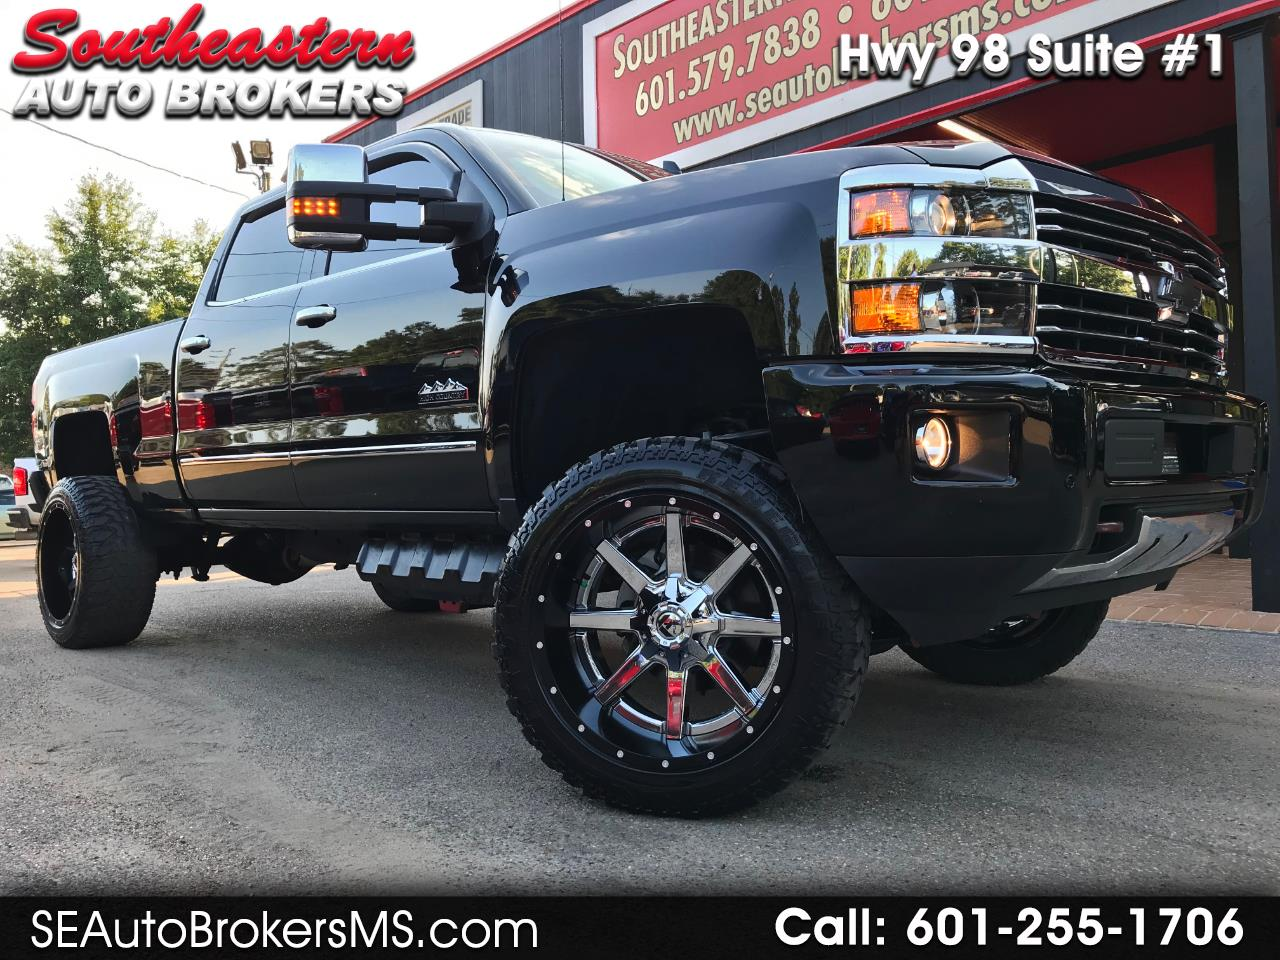 2017 Chevrolet Silverado 2500HD LTZ HIGH COUNTRY CREW CAB 4WD CUSTOM LIFTED